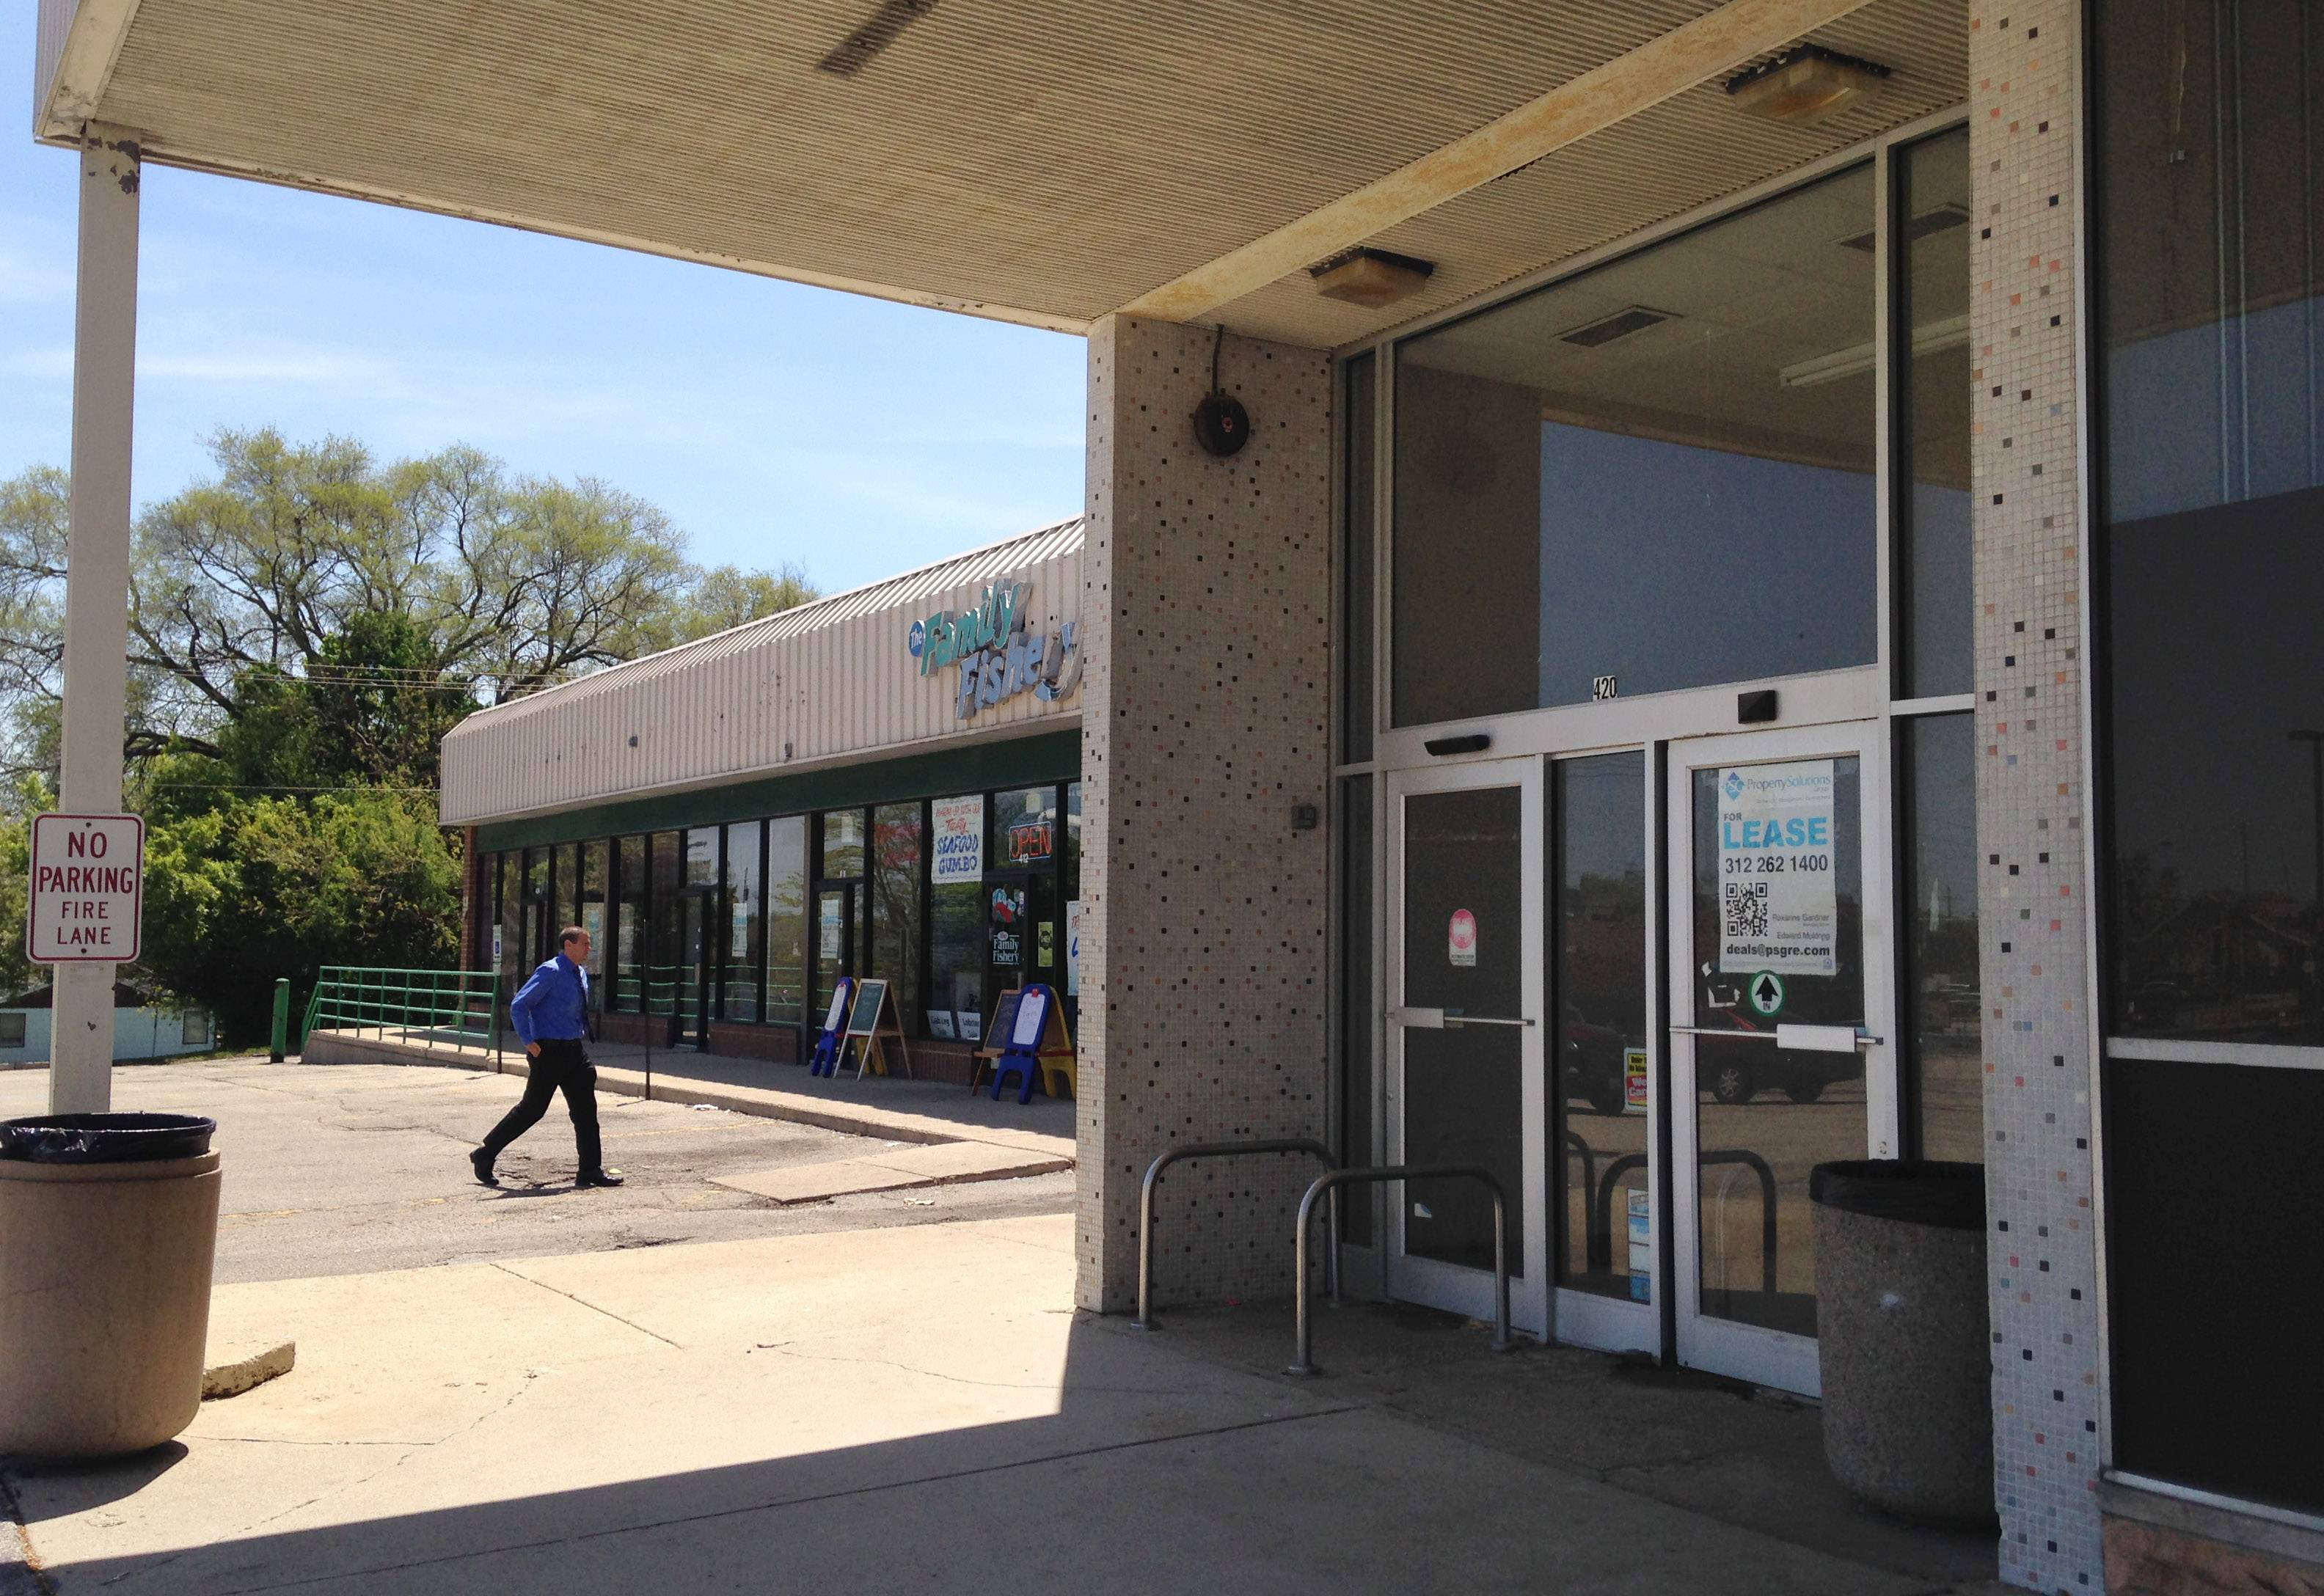 Mundelein's Hawley Lake Plaza could be headed for redevelopment